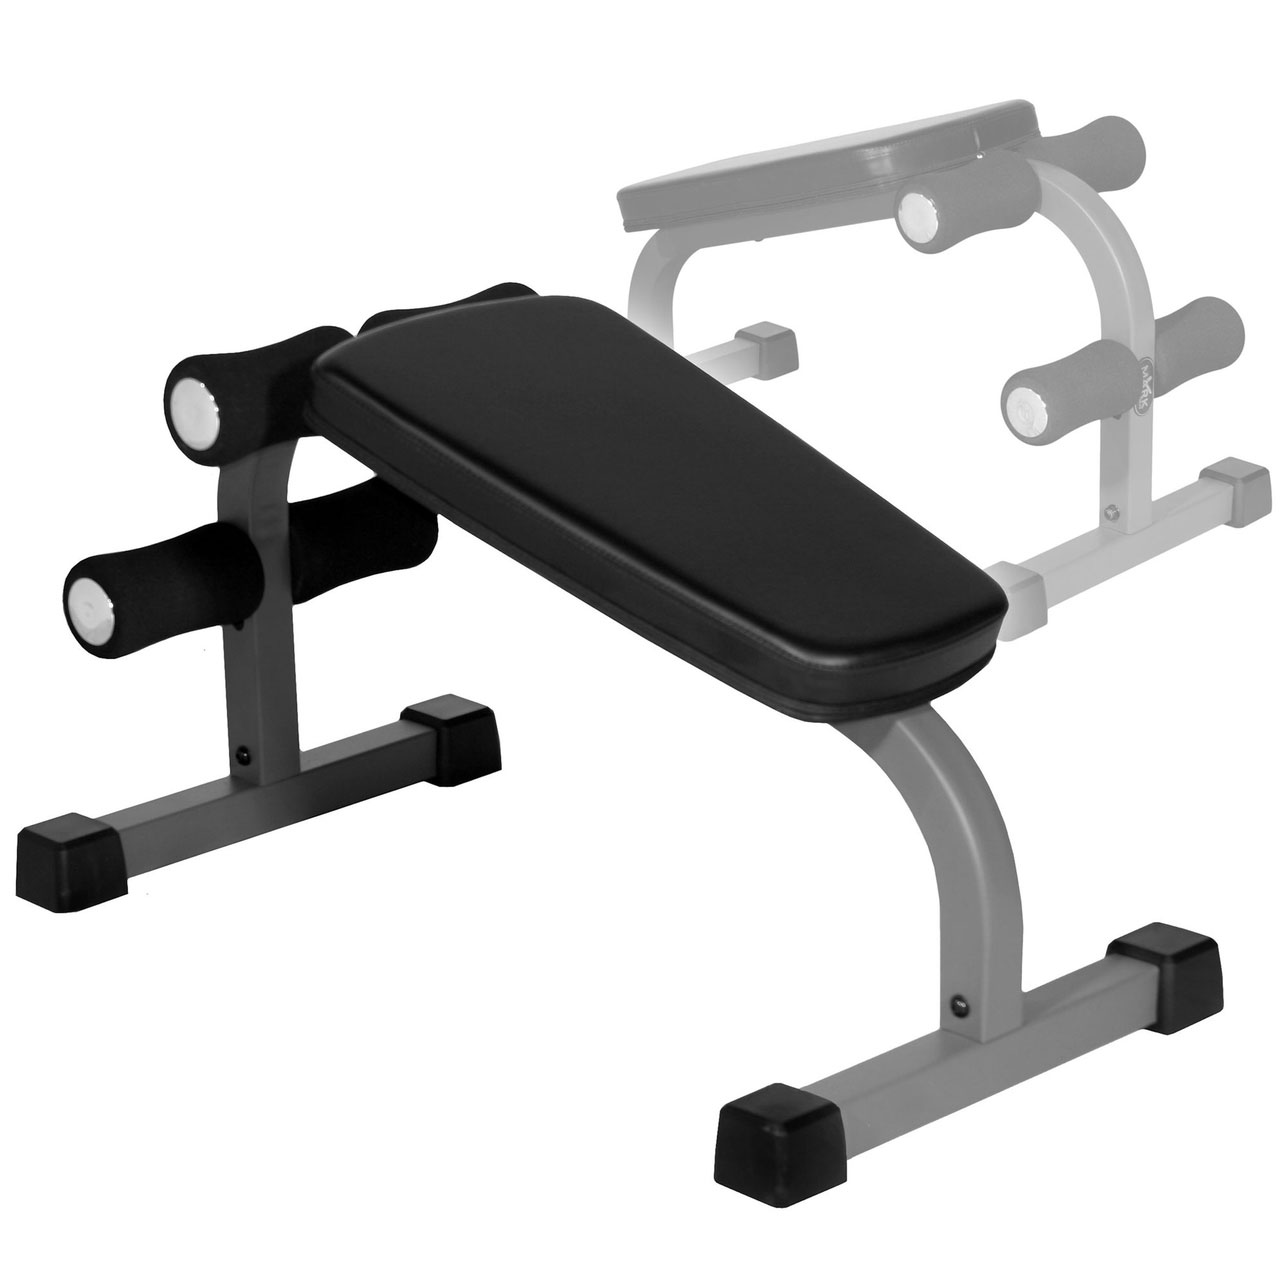 Xmark fitness mini ab bench xm 4415 incredibody Abs bench